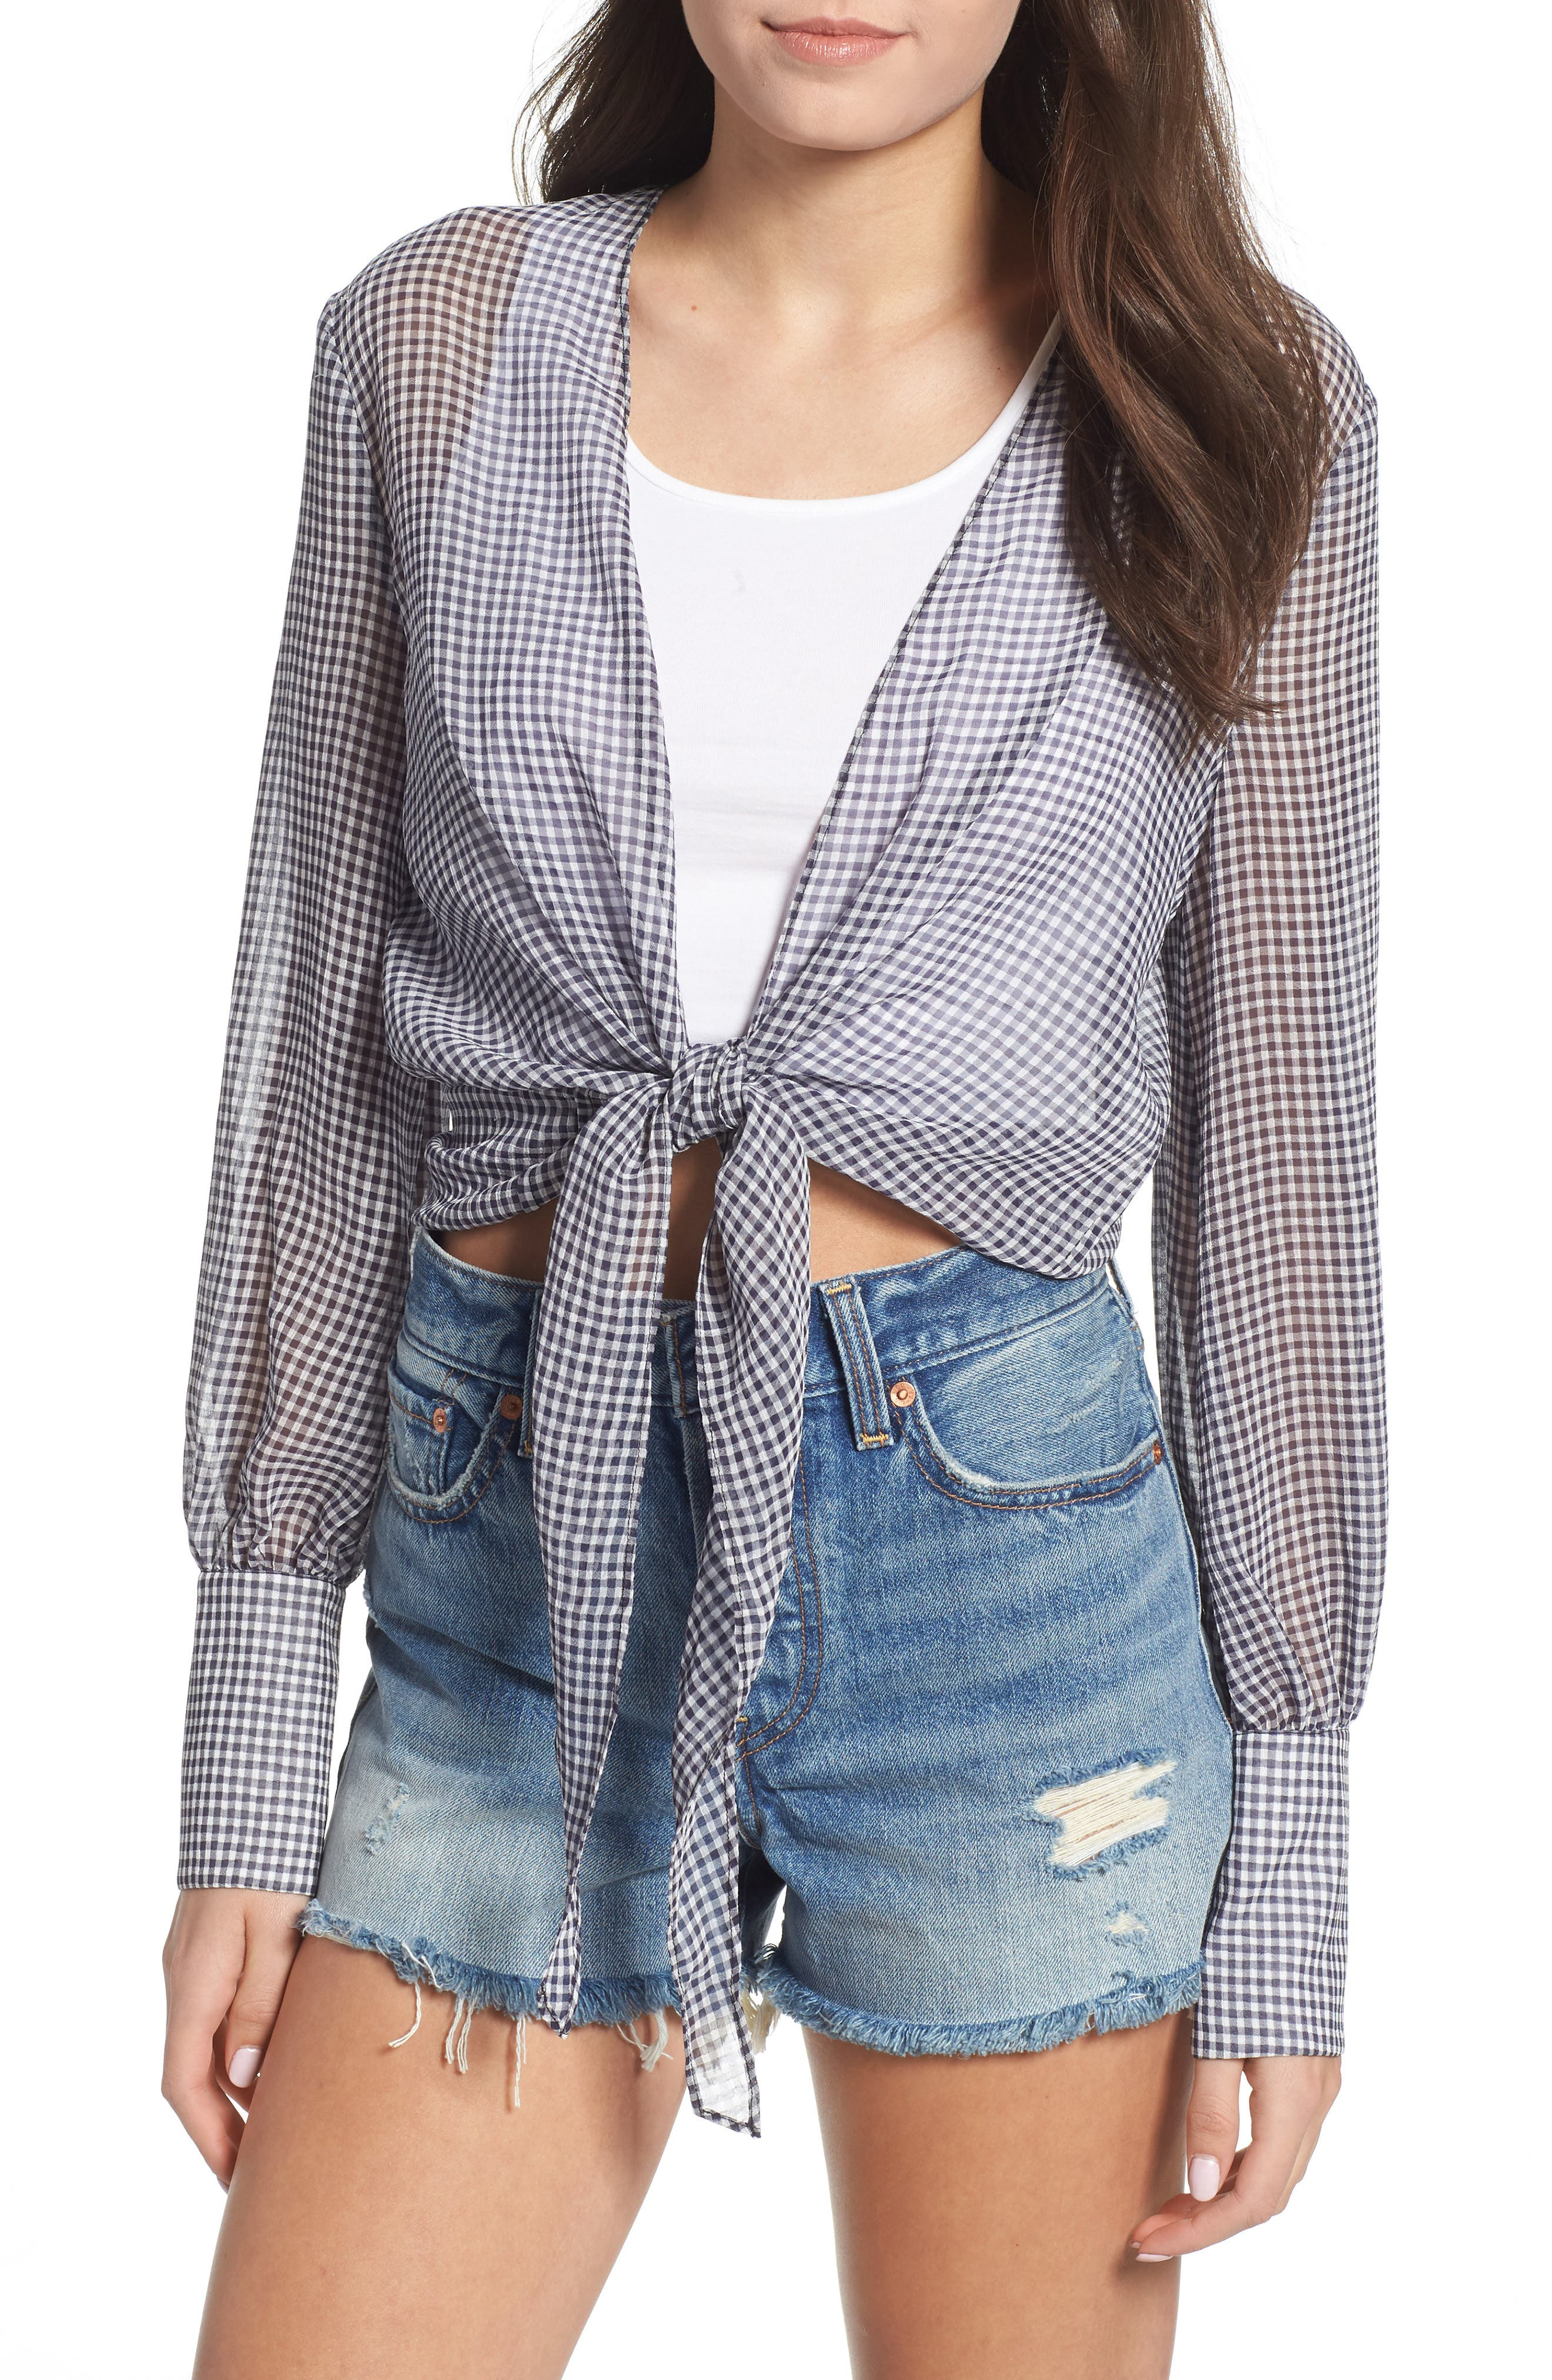 THE EAST ORDER HEATHER TIE FRONT TOP